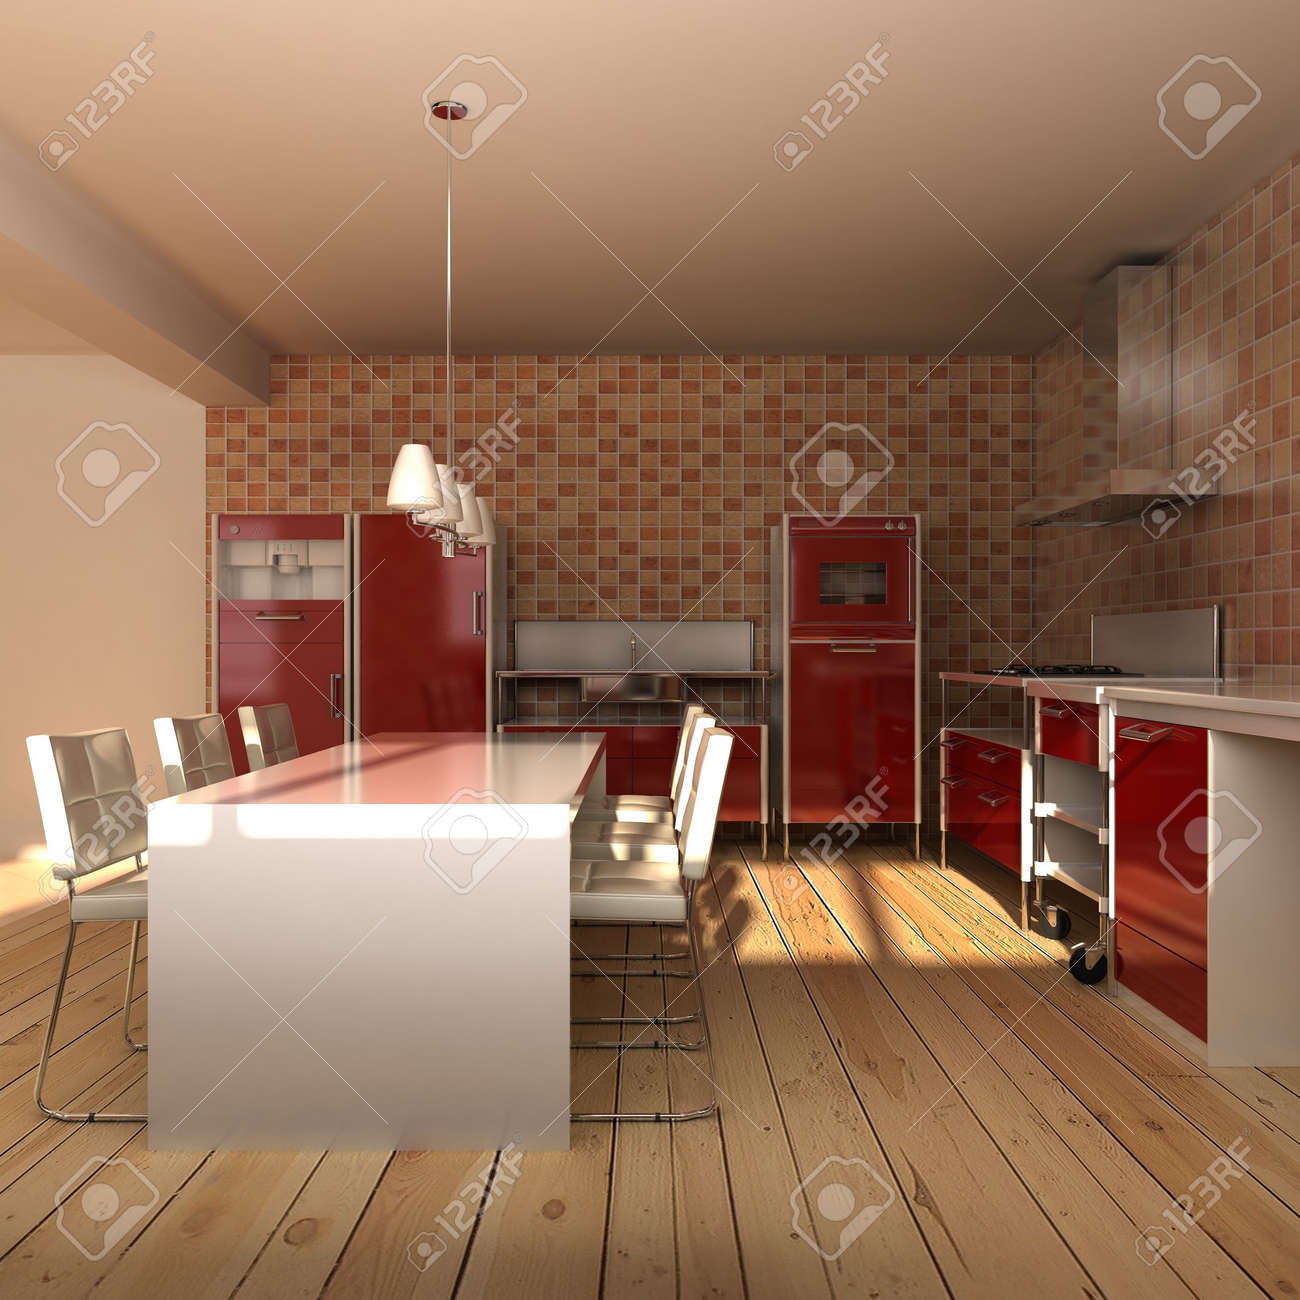 3d rendering interior of a modern dining room Stock Photo - 5522805